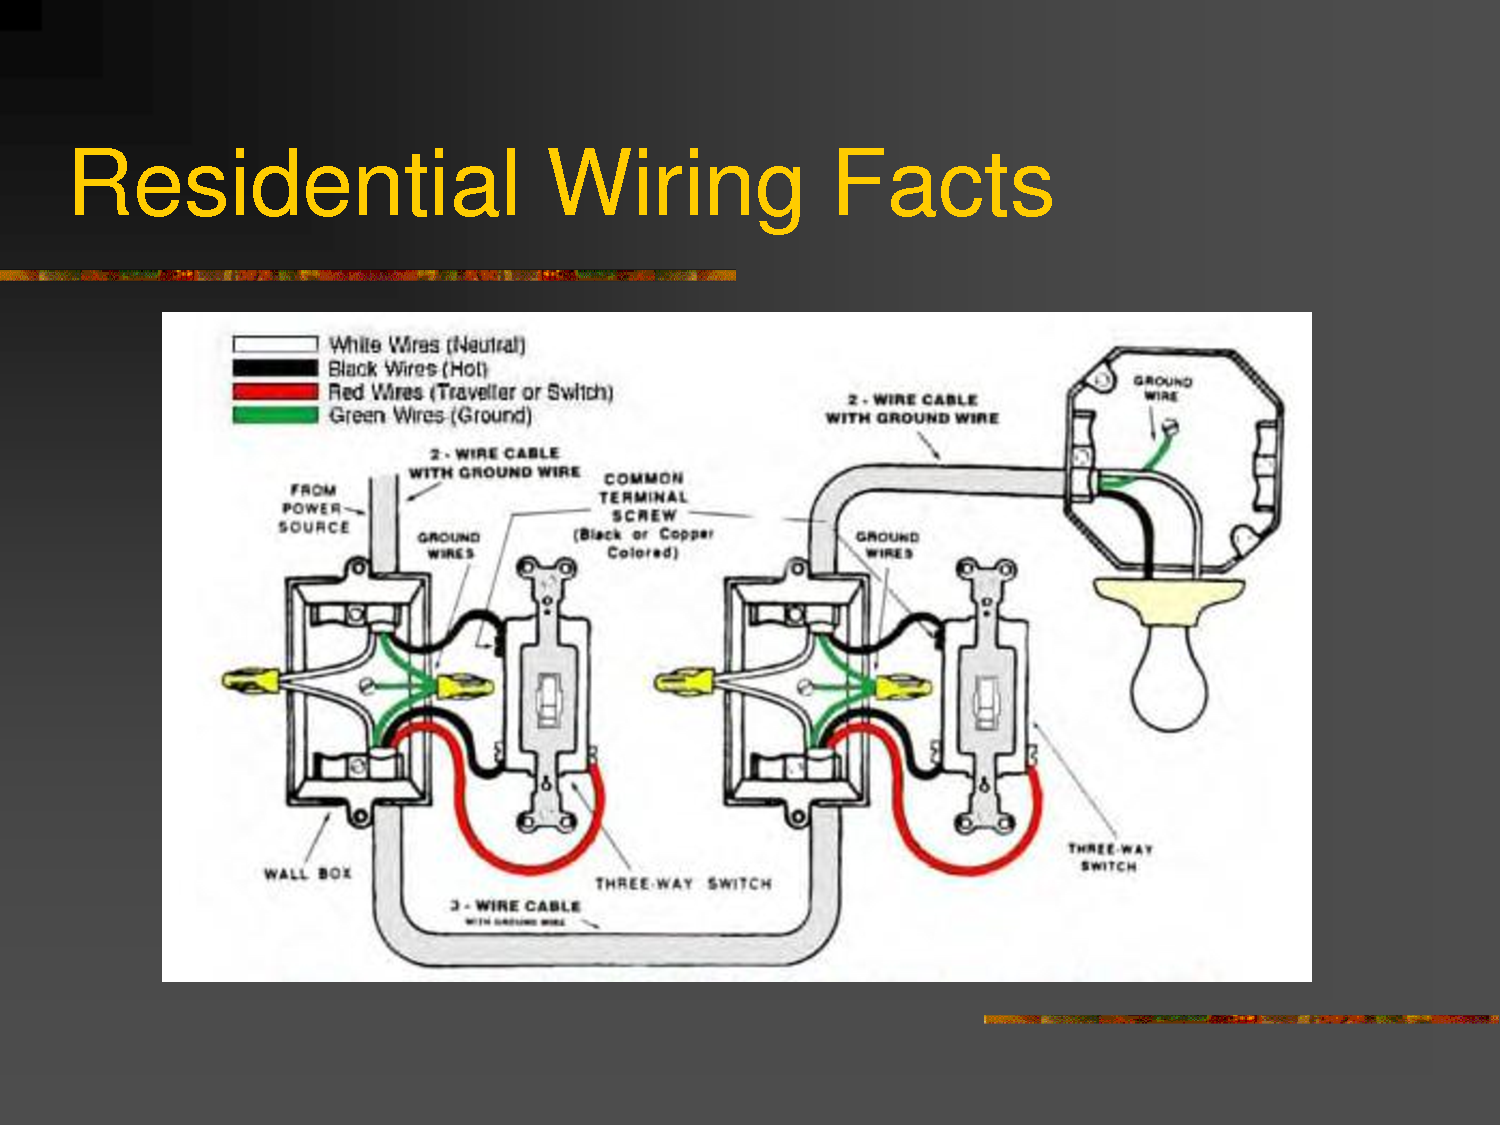 85f6d7068dddf27aa5737fc68962f04e 4 best images of residential wiring diagrams house electrical wiring diagrams explained at bakdesigns.co